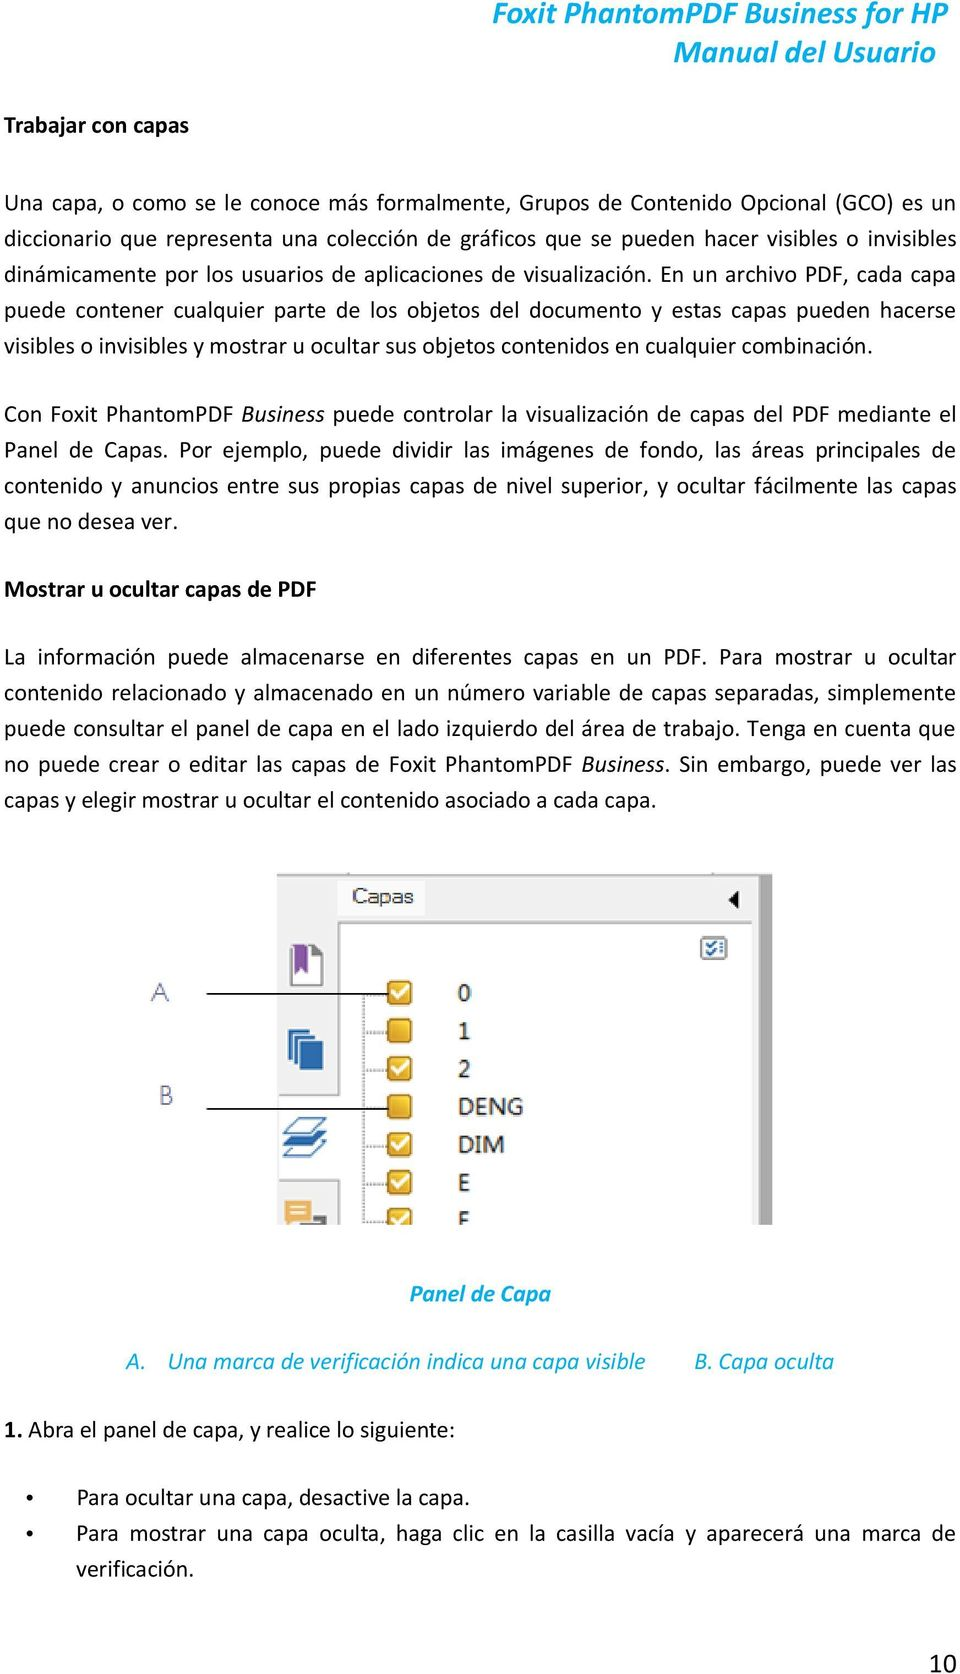 Foxit PhantomPDF Business for HP Manual del Usuario - PDF